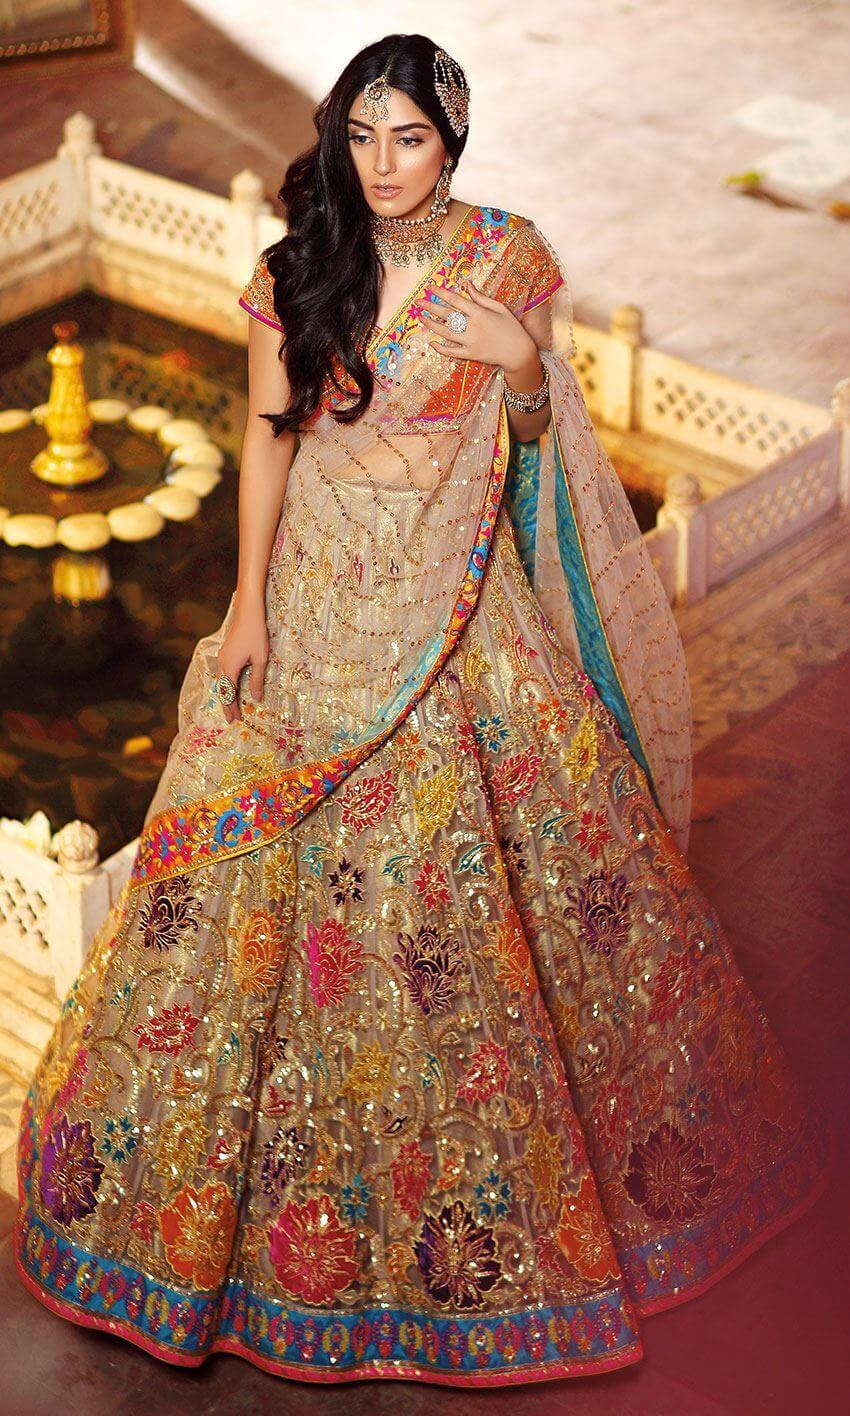 Bridal Mehndi Lehenga Choli by Nomi Ansari with Gold Embroidery work